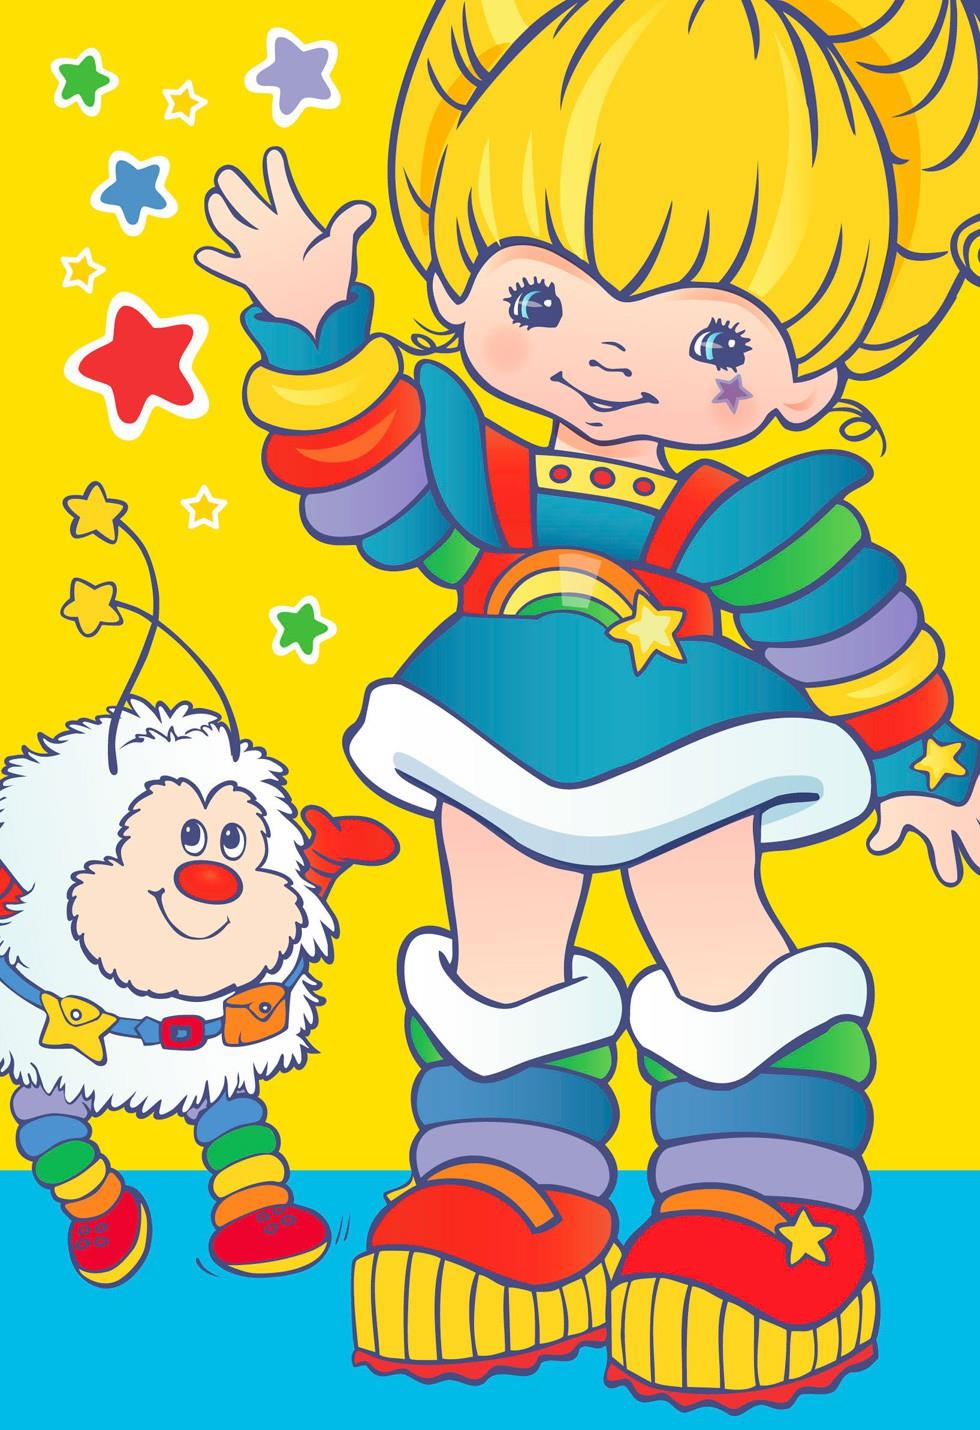 Rainbow Brite Dress Up With Stickers Card for Kid  Greeting Cards  Hallmark